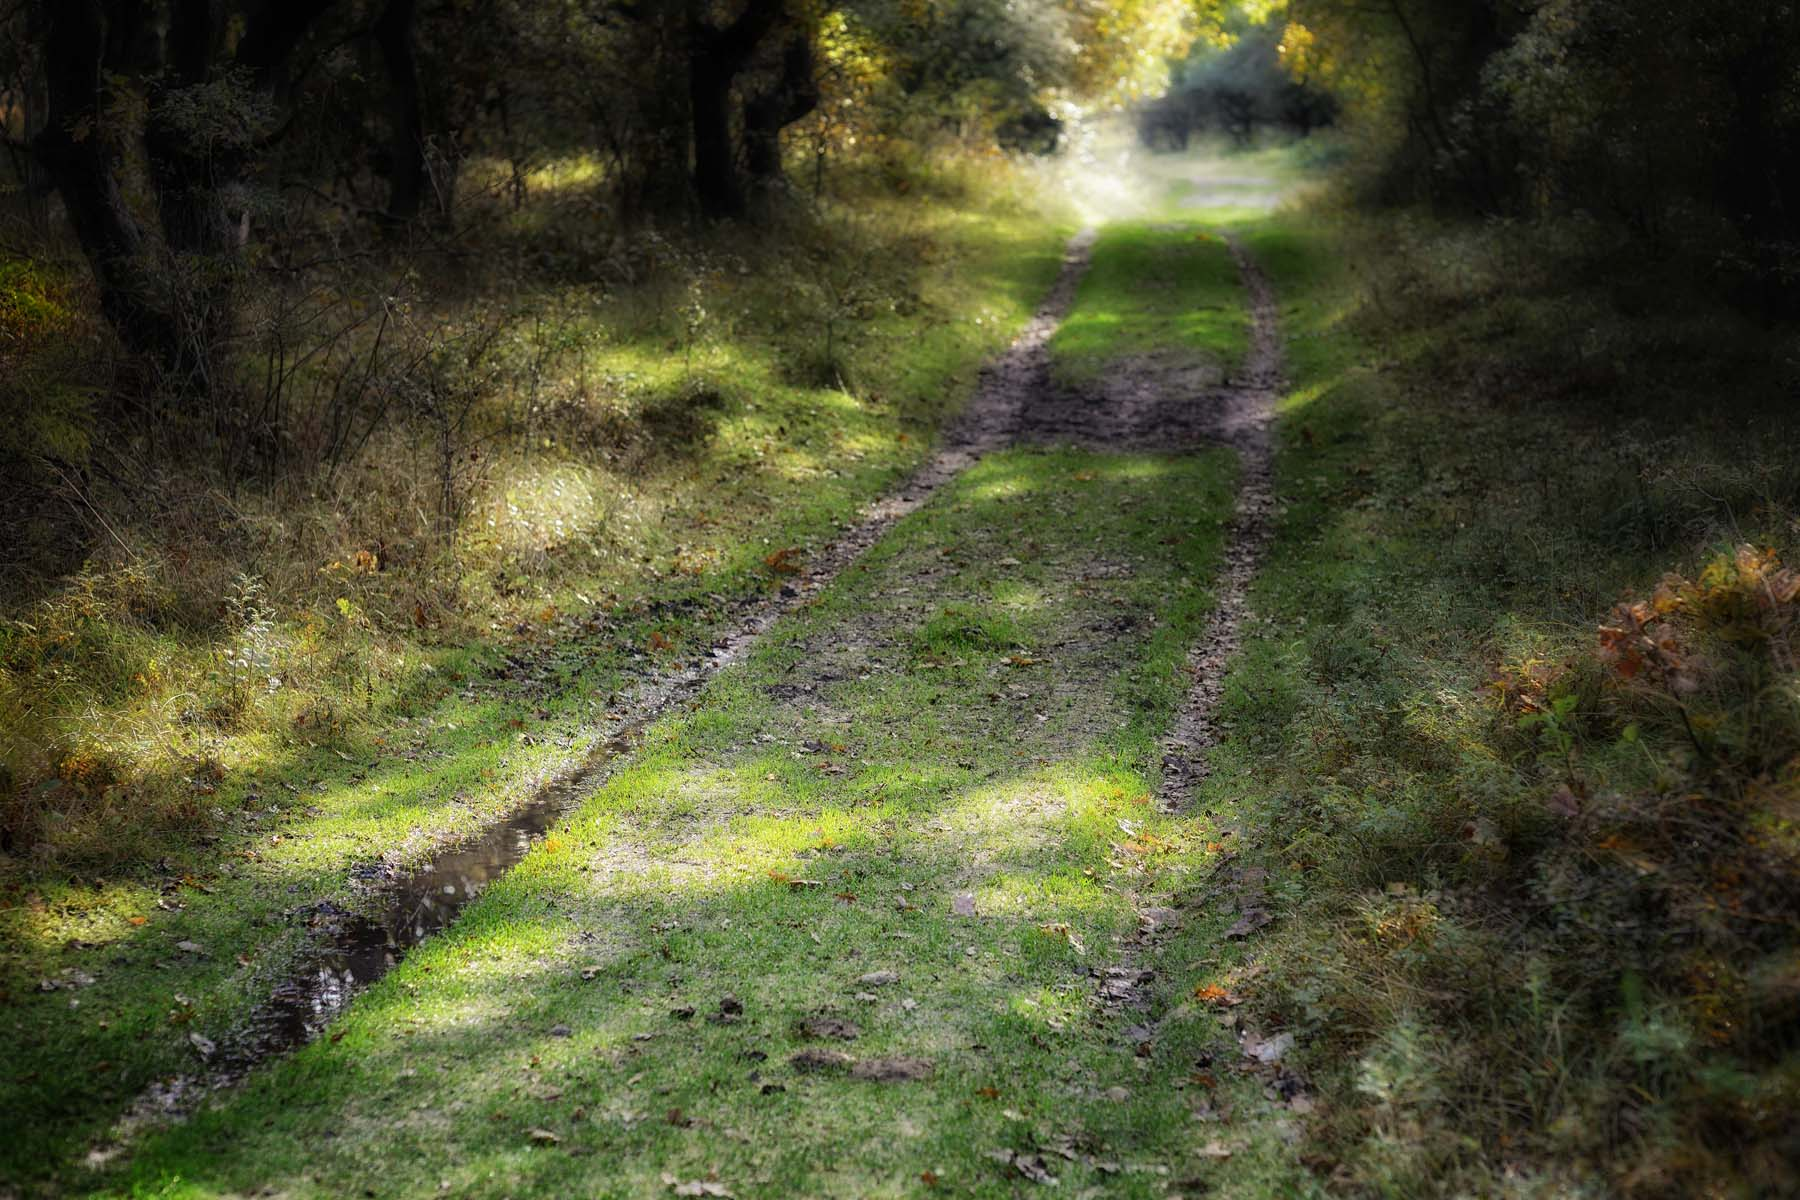 forest path in dappled light